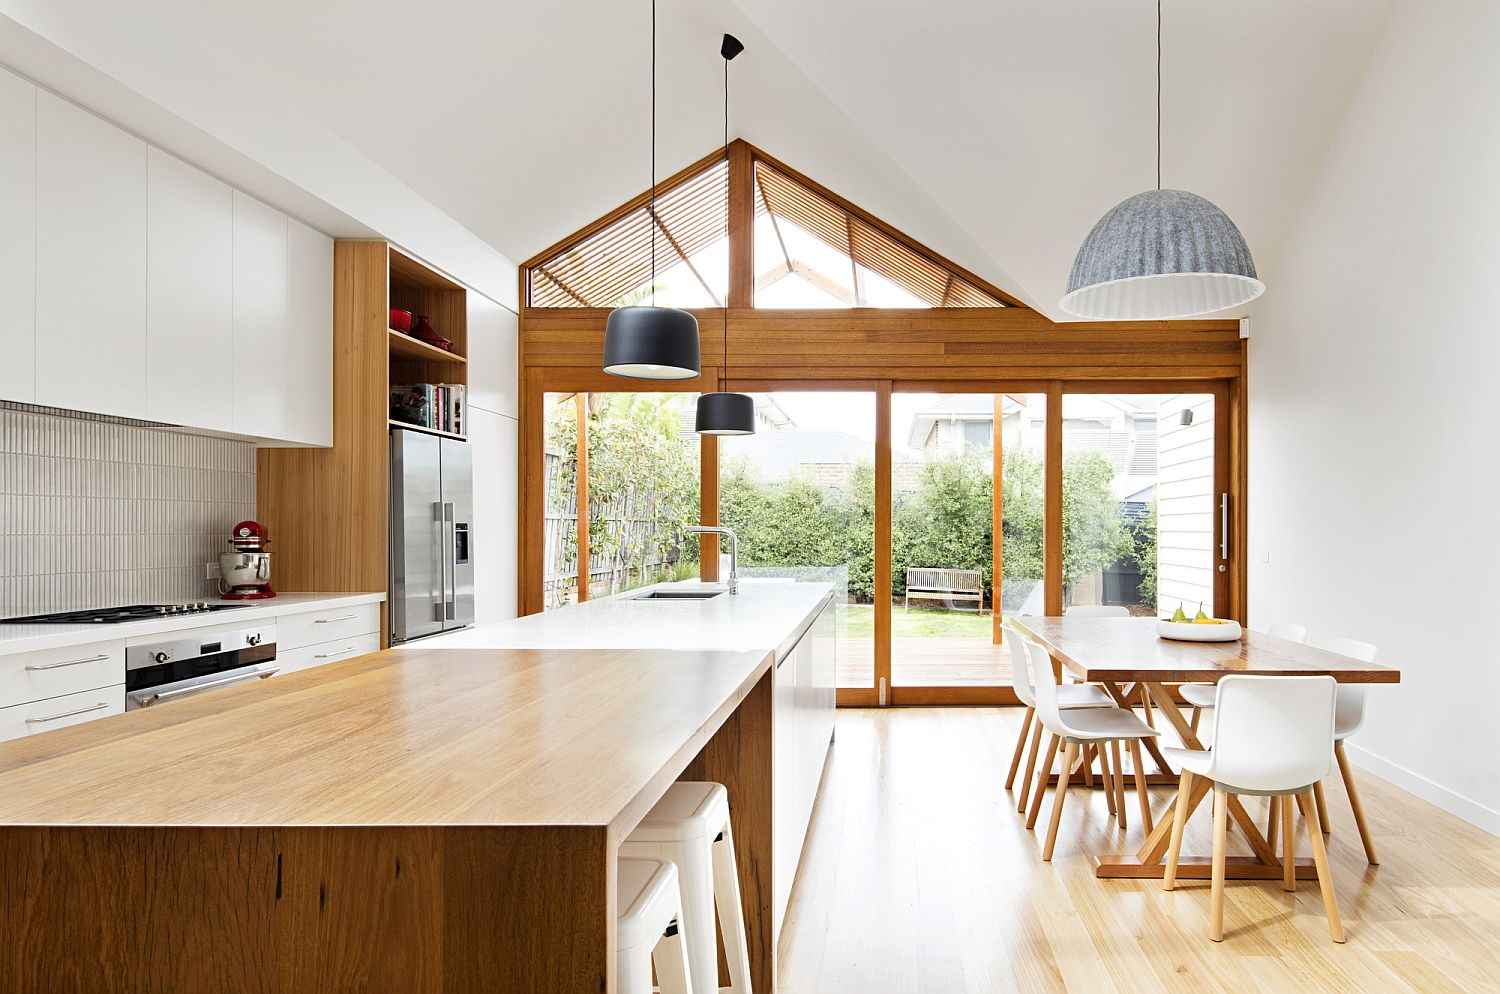 Striking pendants blend into the modern theme of the kitchen